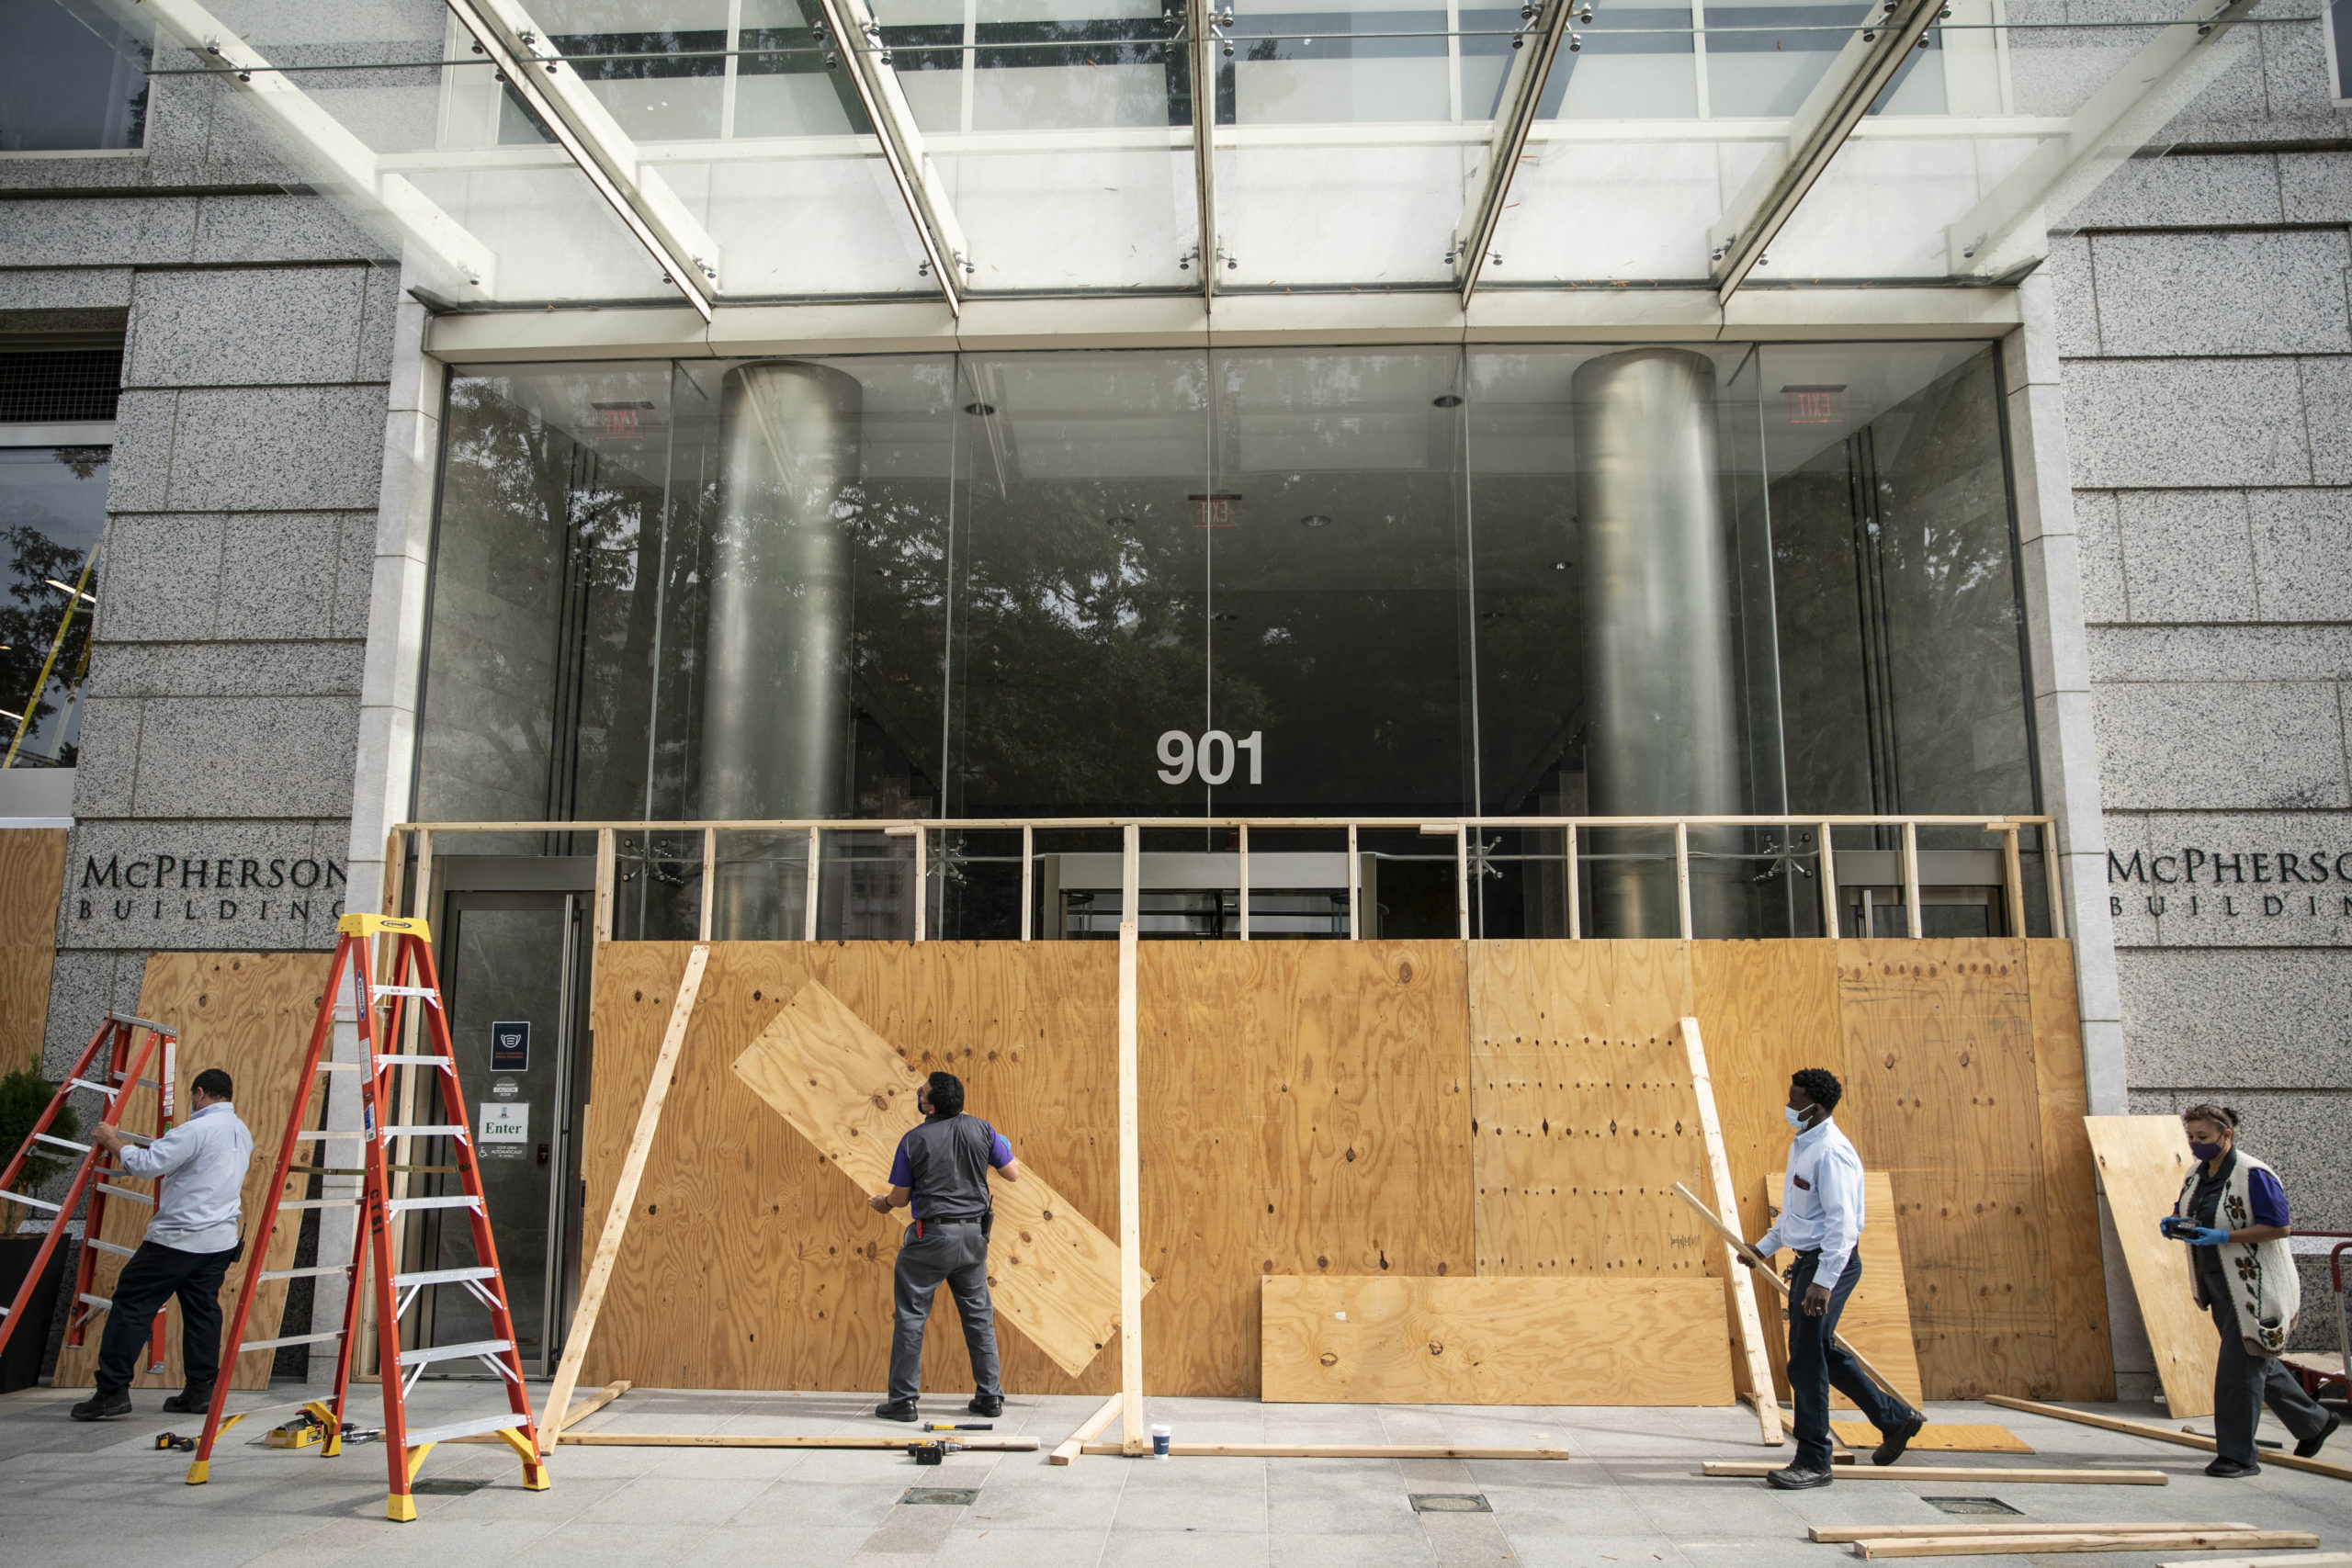 WASHINGTON, DC - OCTOBER 28: Protective wood boards are placed on the front of the McPherson Building on October 28, 2020 near the White House in Washington, DC. Businesses are preparing for possible demonstrations following next week's presidential election. (Photo by Sarah Silbiger/Getty Images)